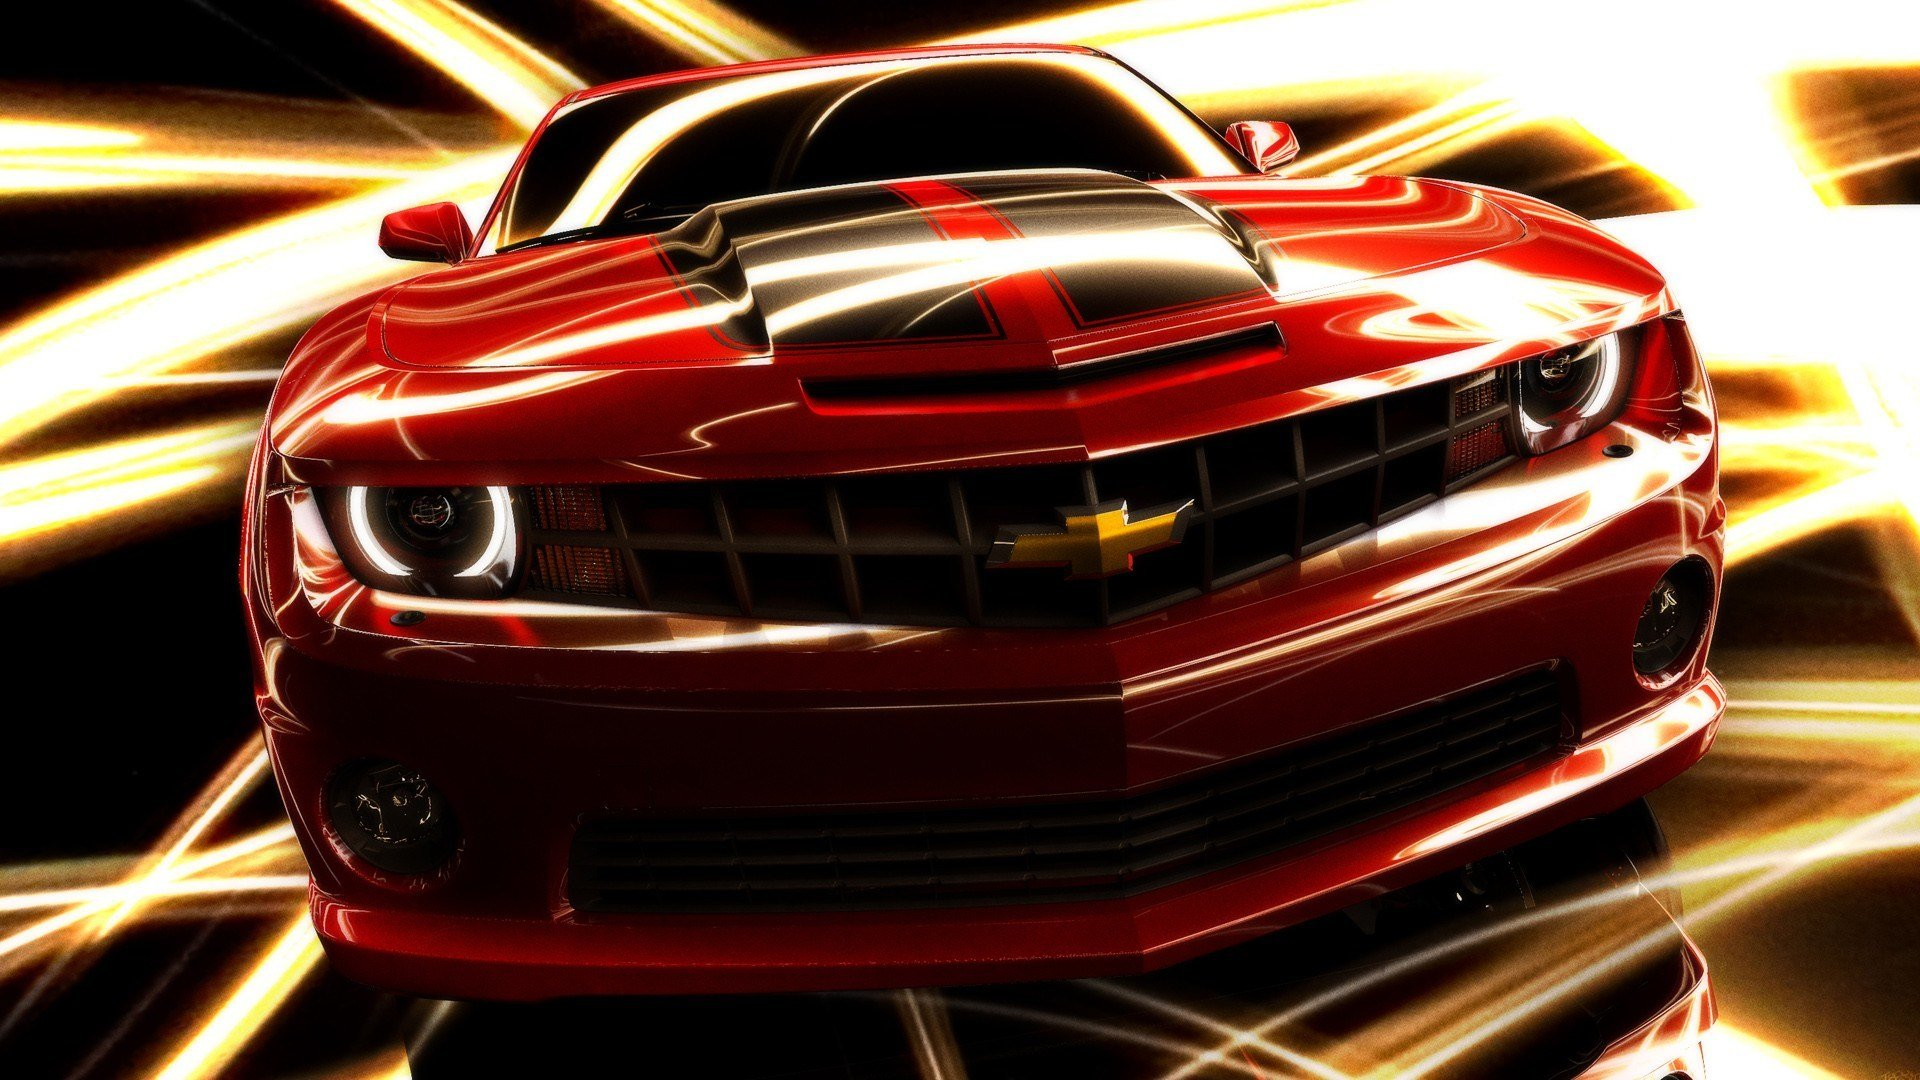 New Gm Chevrolet Camaro Wallpapers Hd Wallpapers Id 12562 On This Month